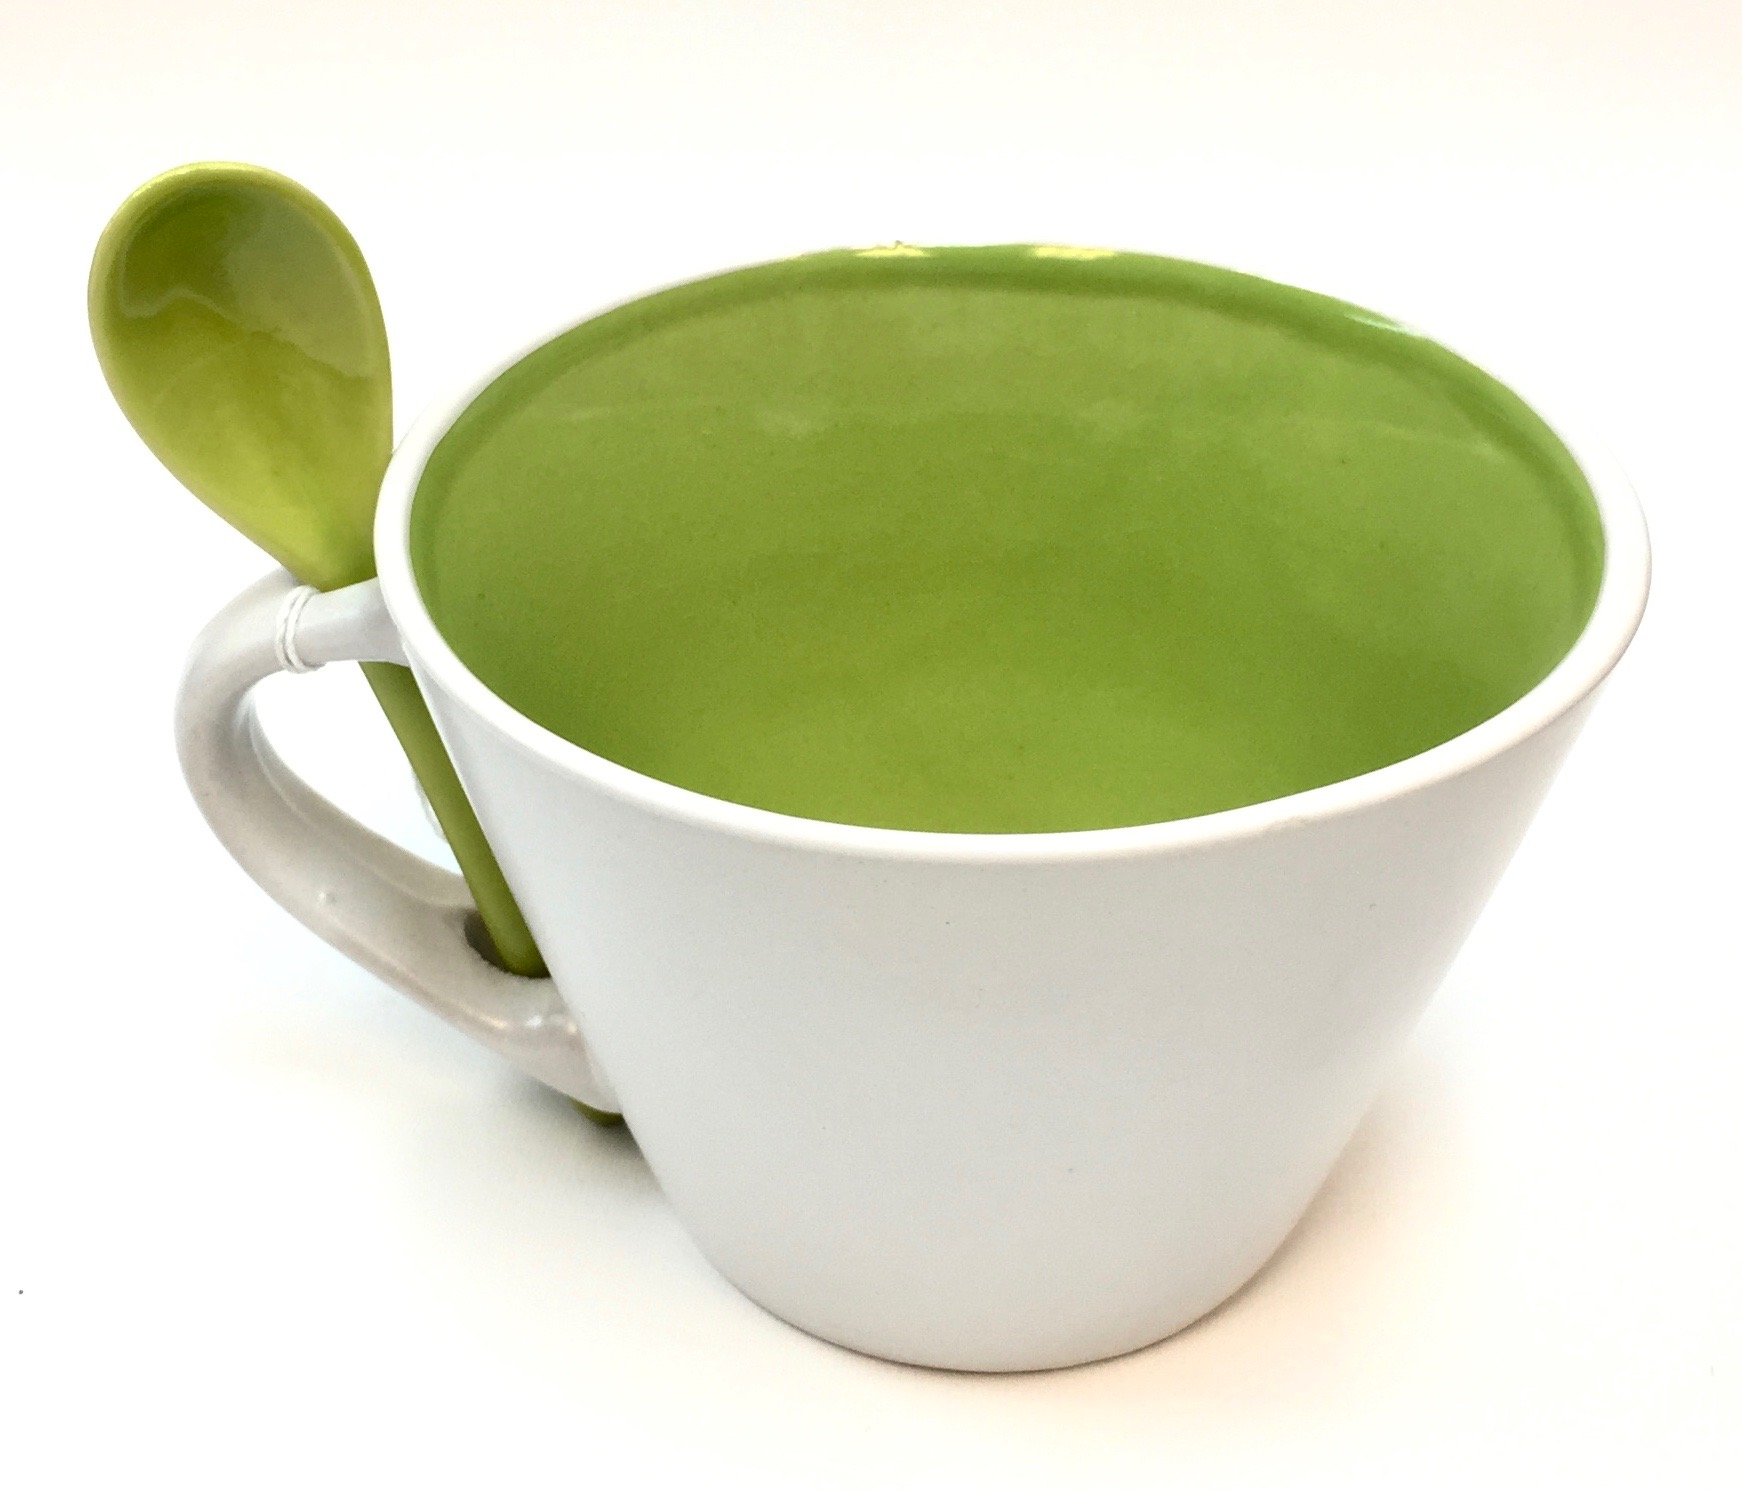 16 Oz Matte Mug W/Spoon - Lime/White